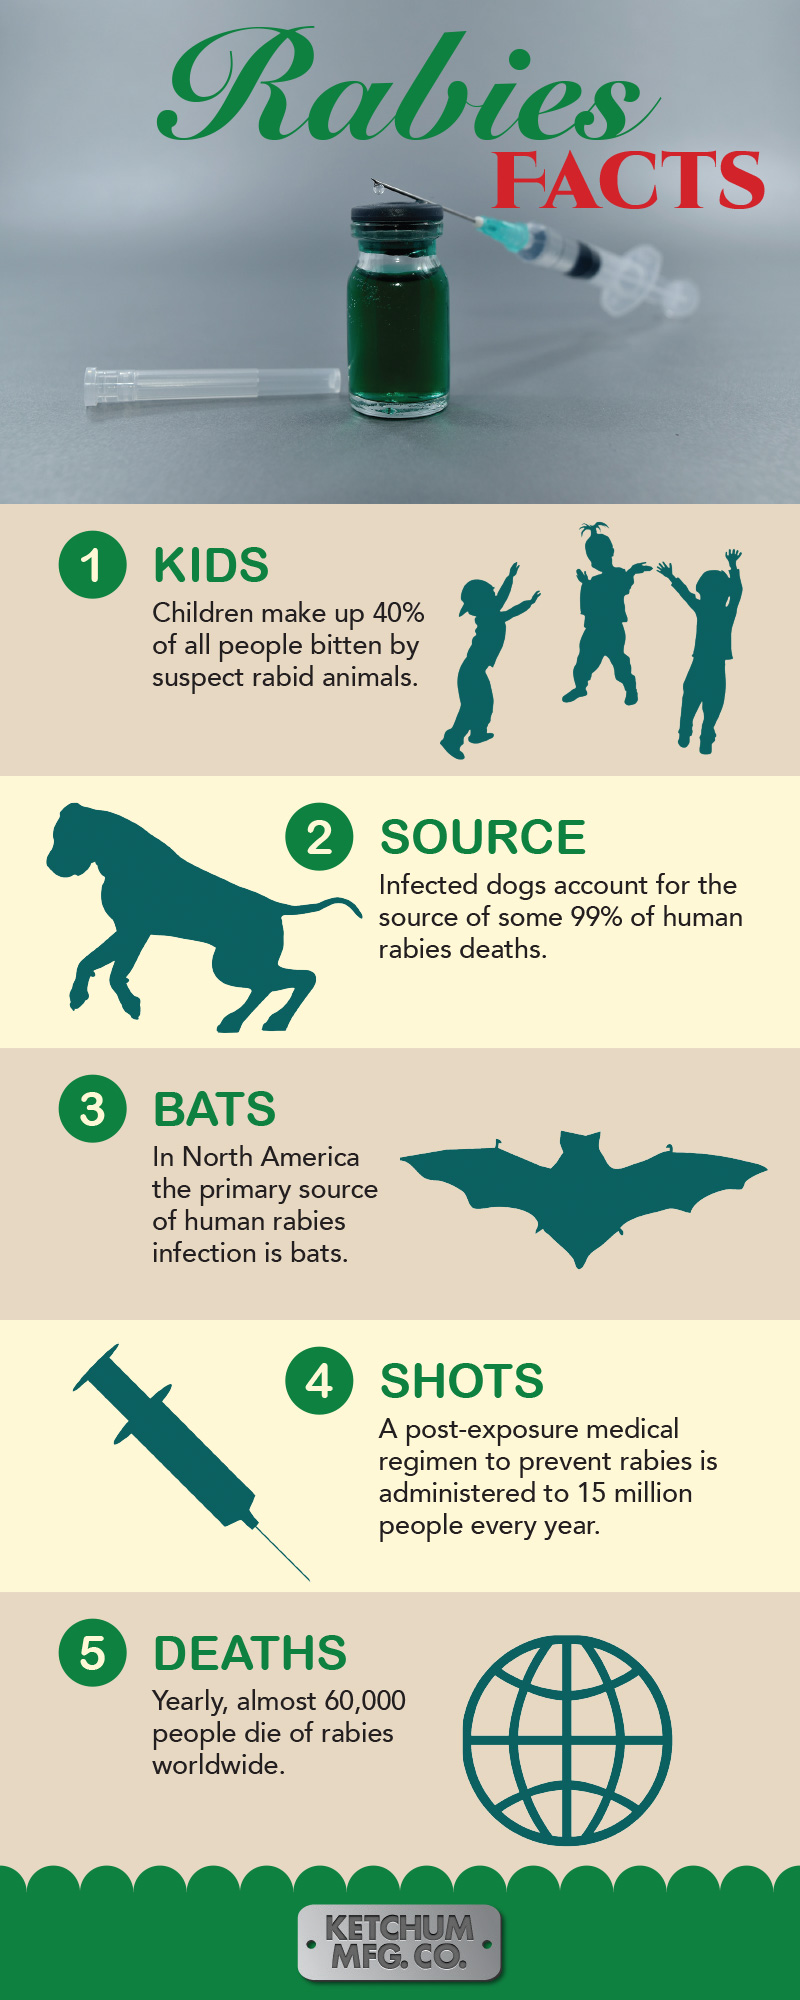 Rabies Facts